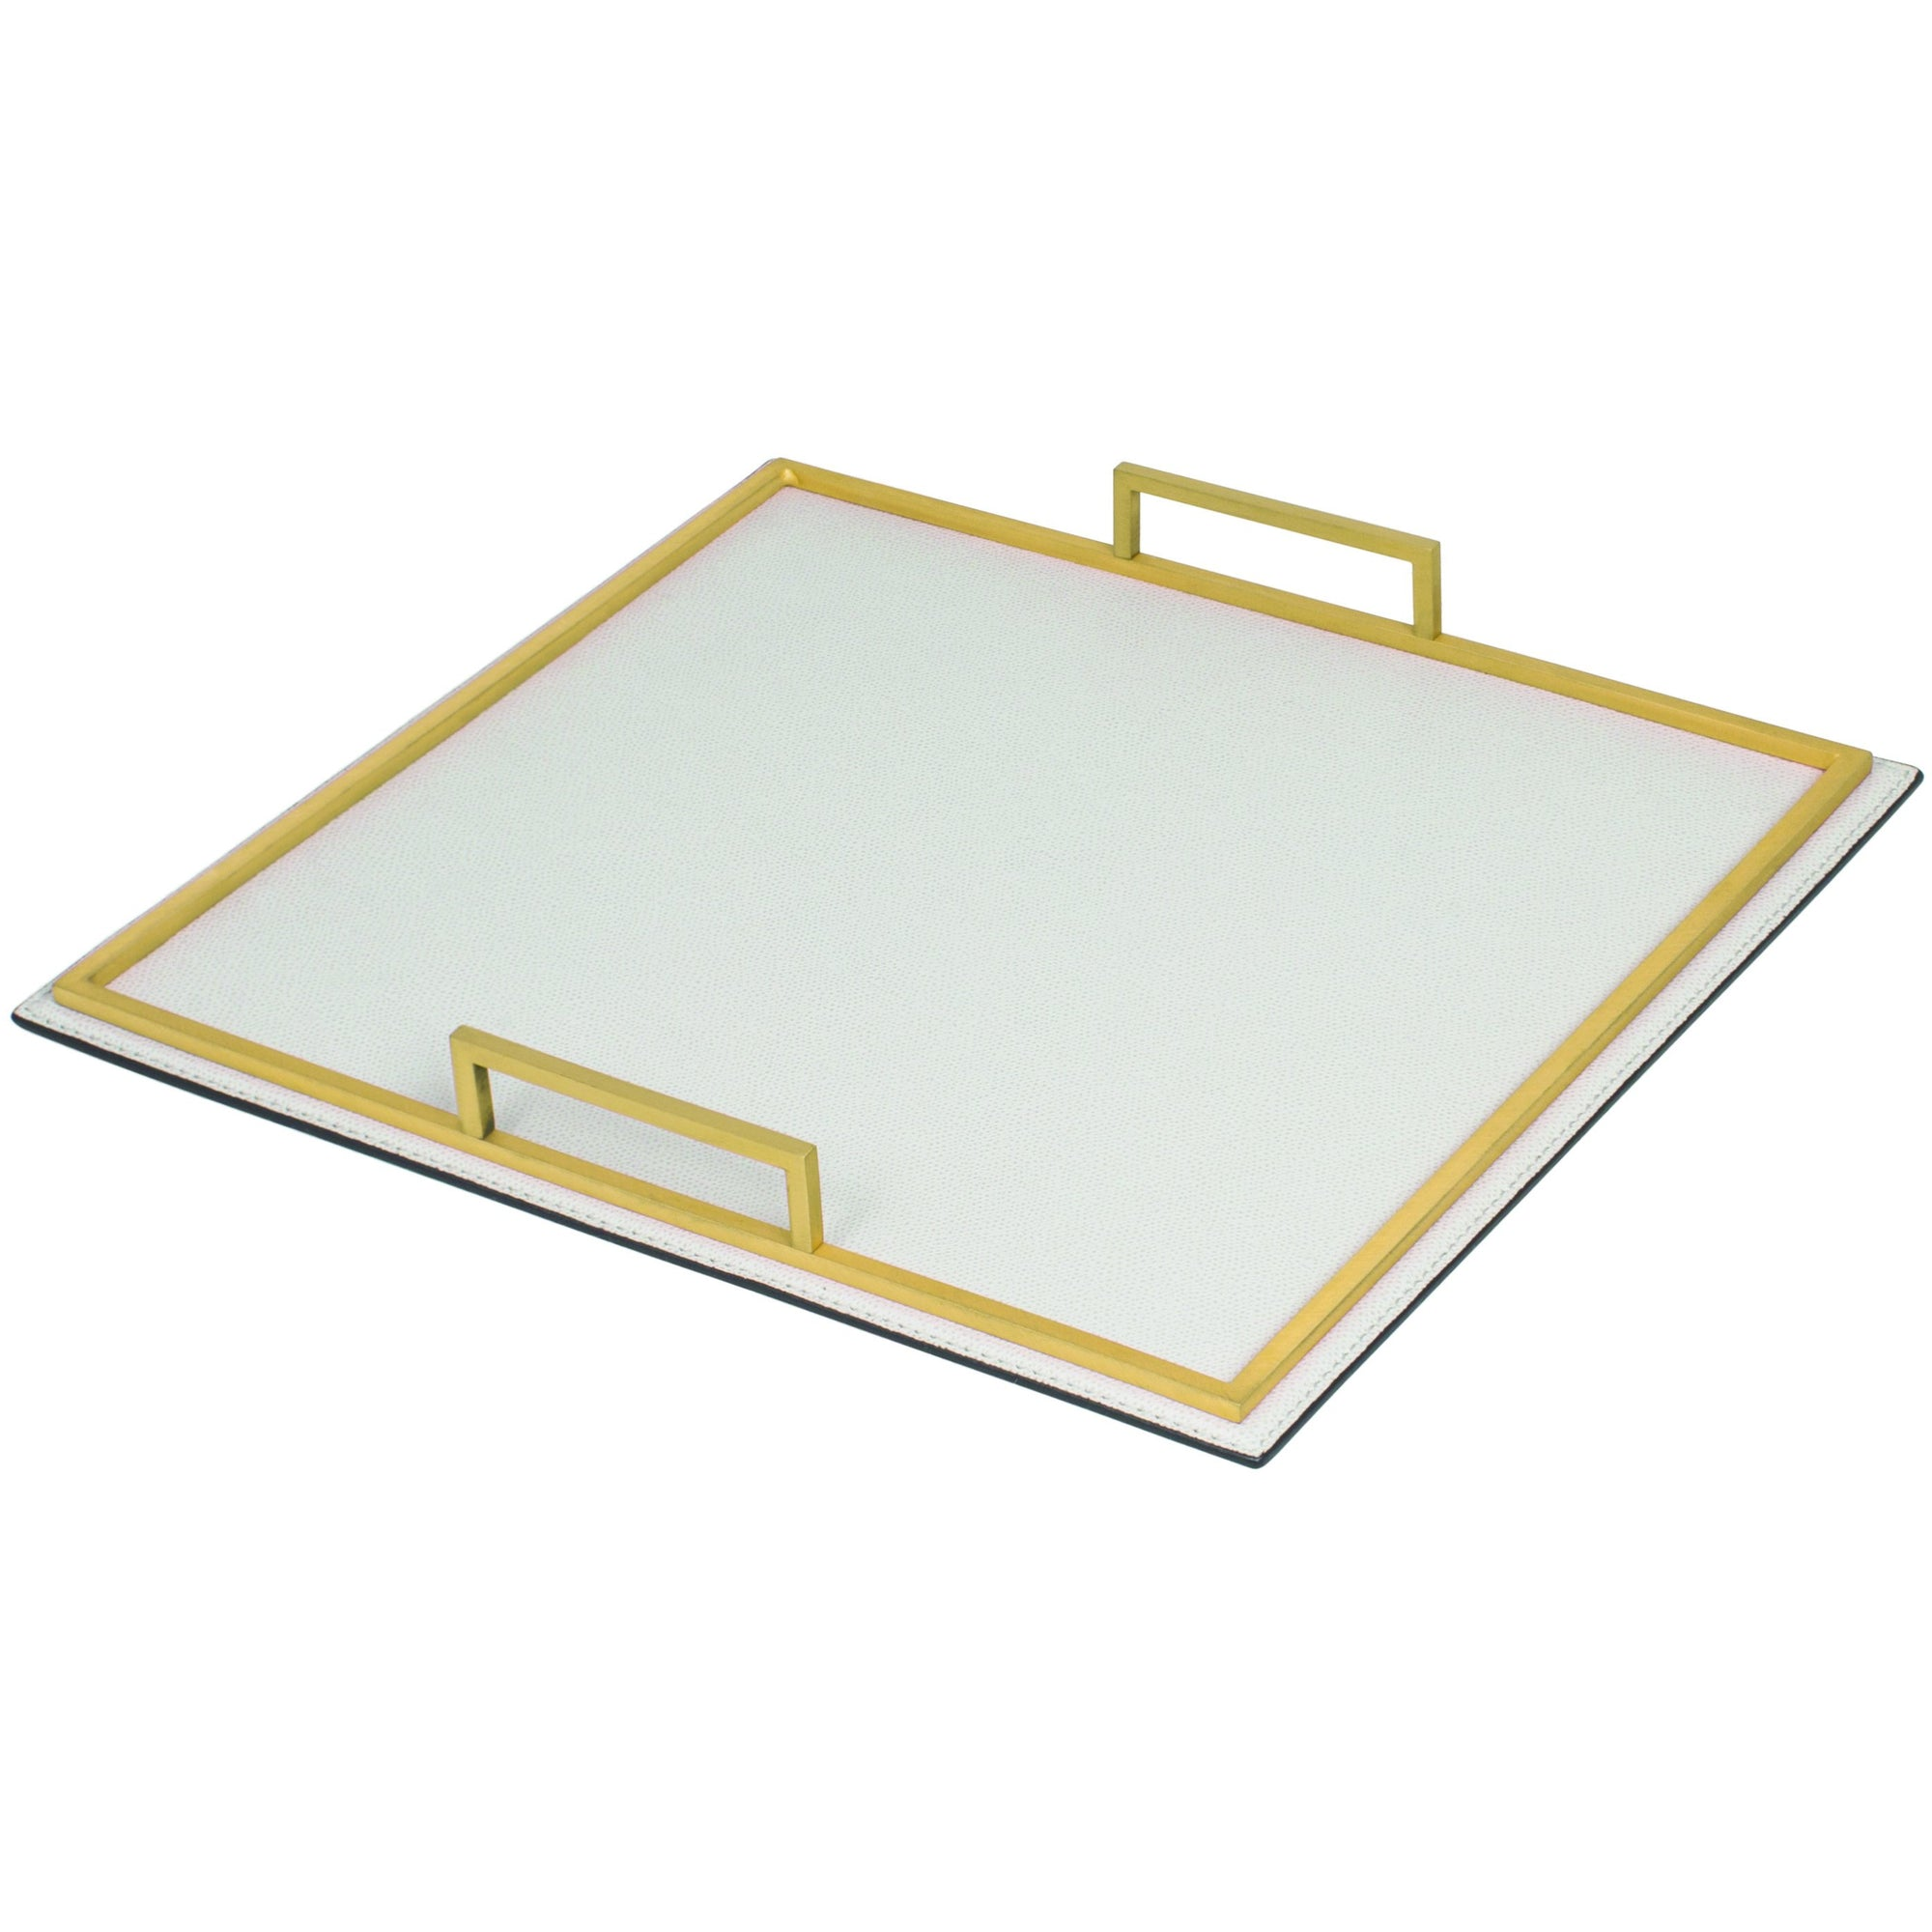 Defile Square Tray